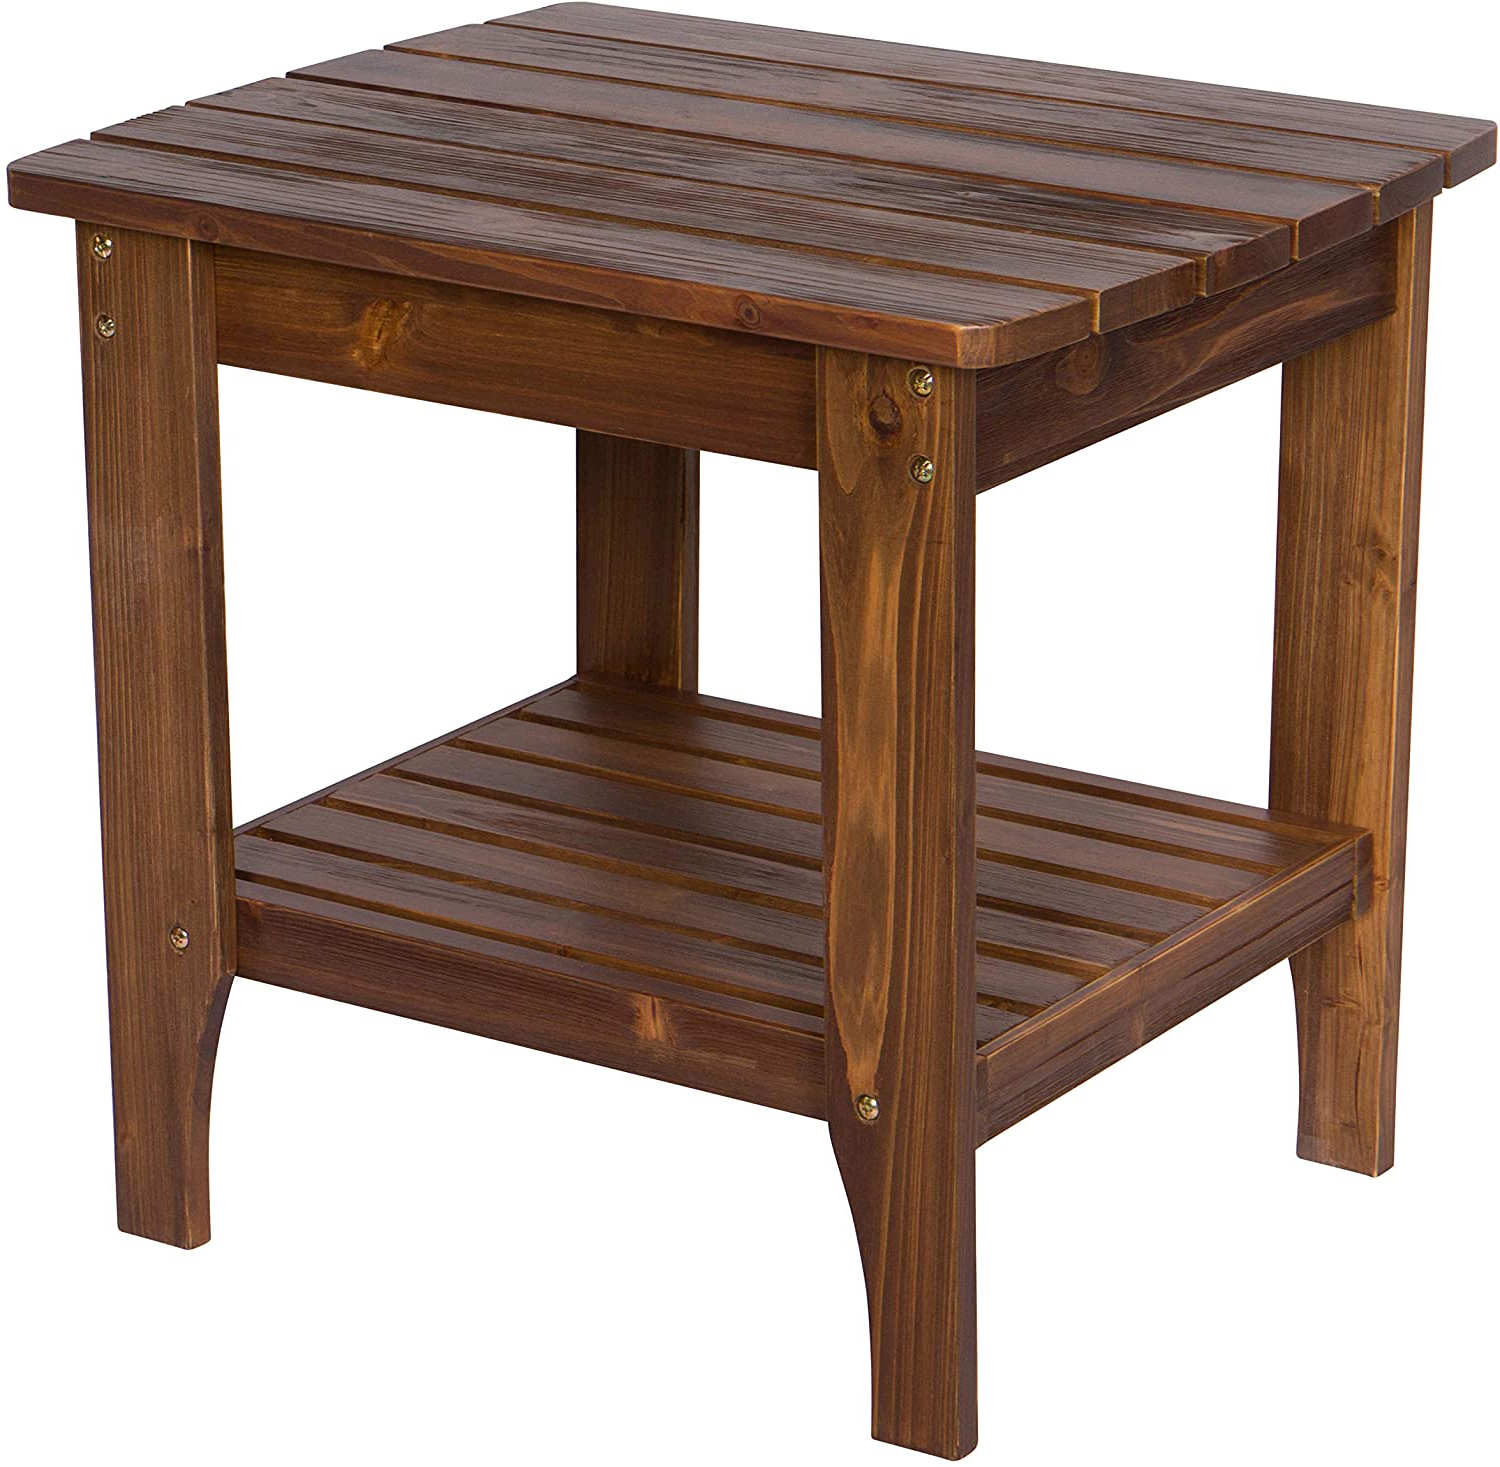 Preferred Shine Company 4113oa Indoor/outdoor Rectangular Hydro Tex Finish, Oak Side Table For Oakside Ceramic Garden Stools (View 30 of 30)